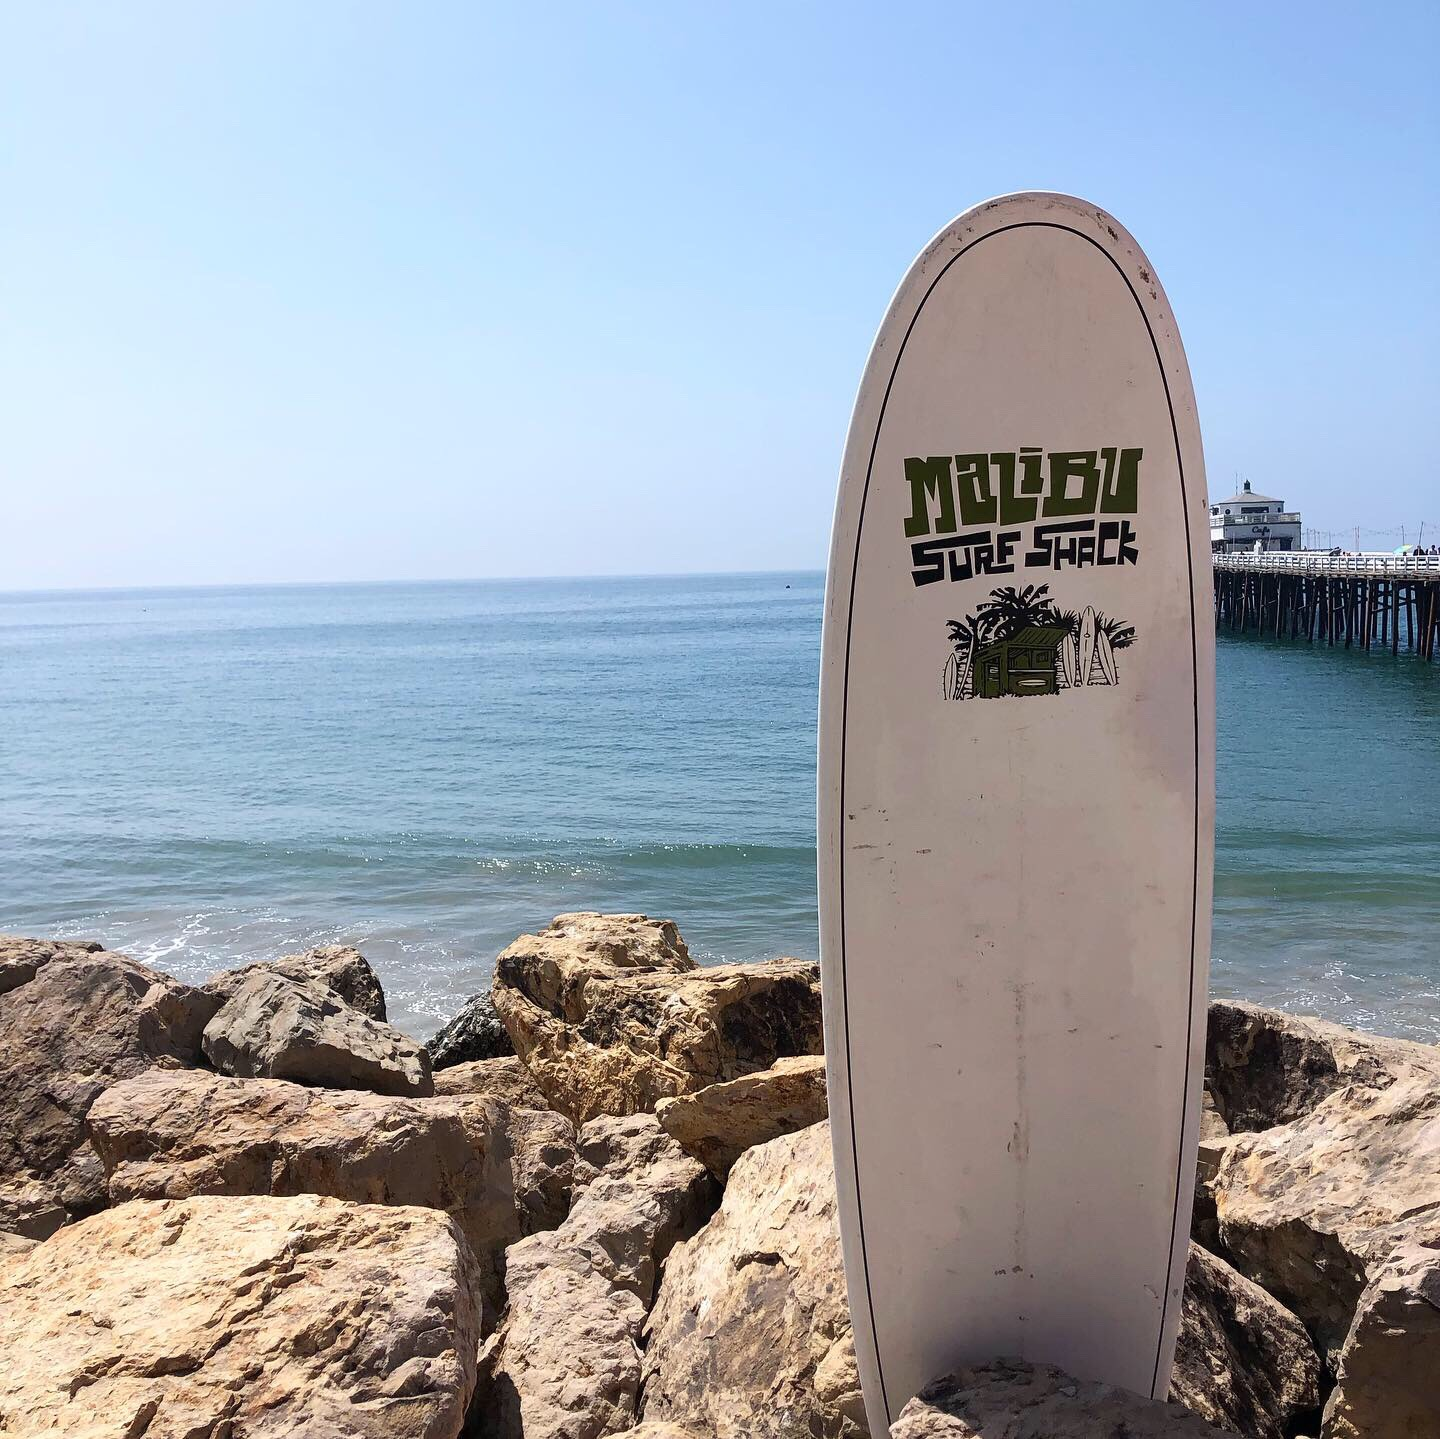 The Malibu Pier is perfect for views & photos. It's less touristy than the Santa Monica pier & perfect for watching crowds of surfers ride the waves!